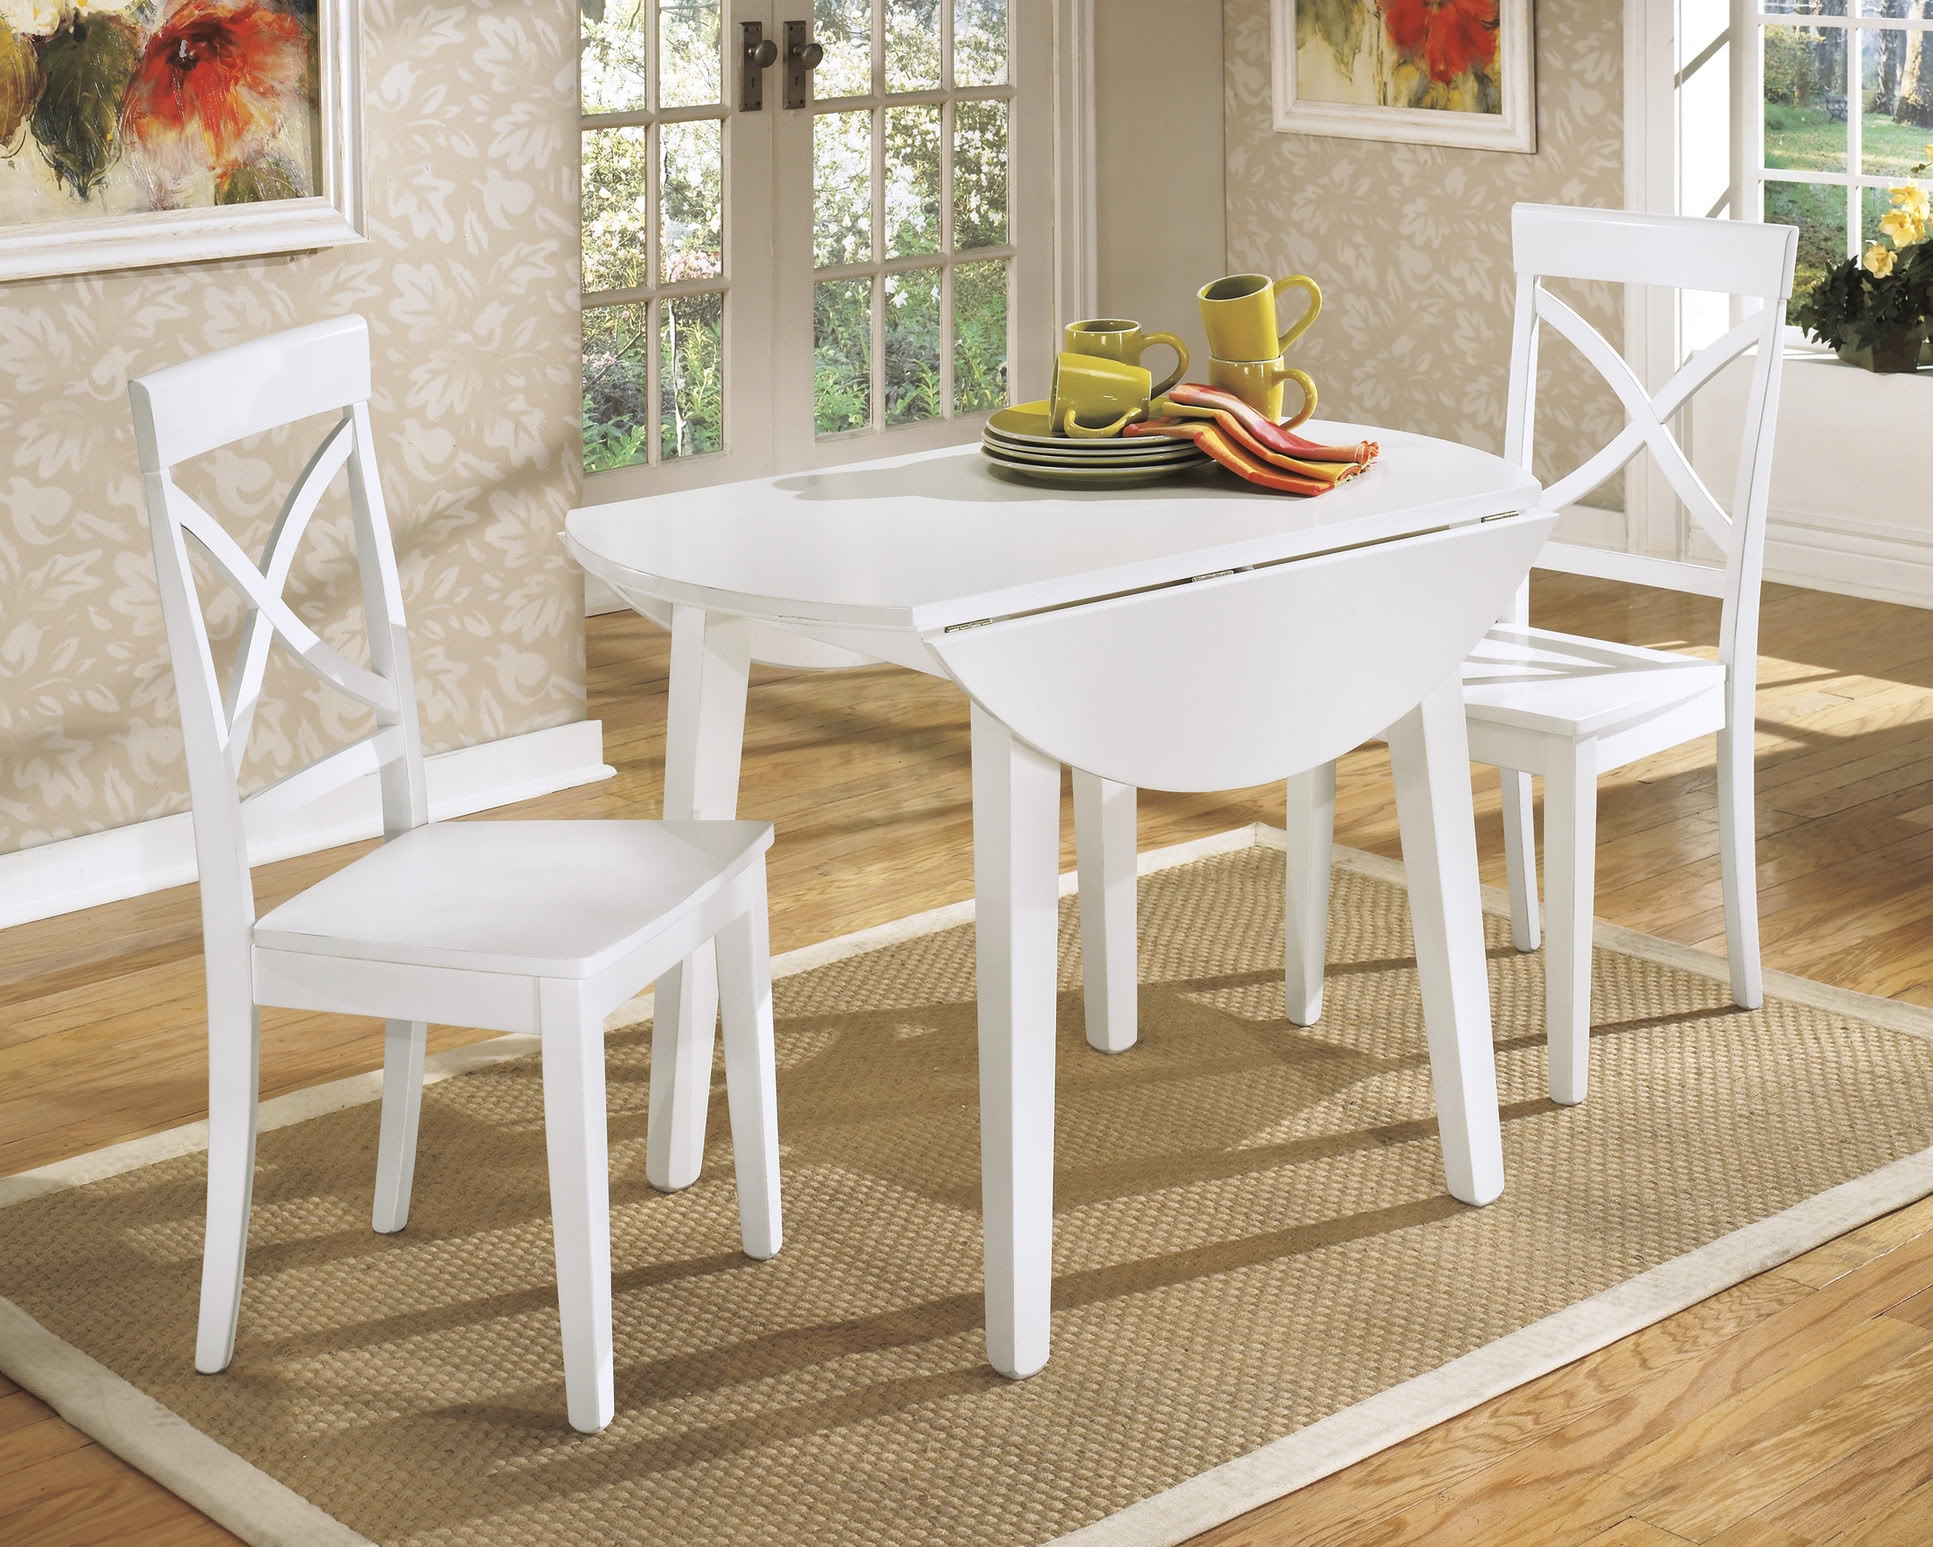 White round kitchen table and chairs design homesfeed - Table salle a manger pliante ...